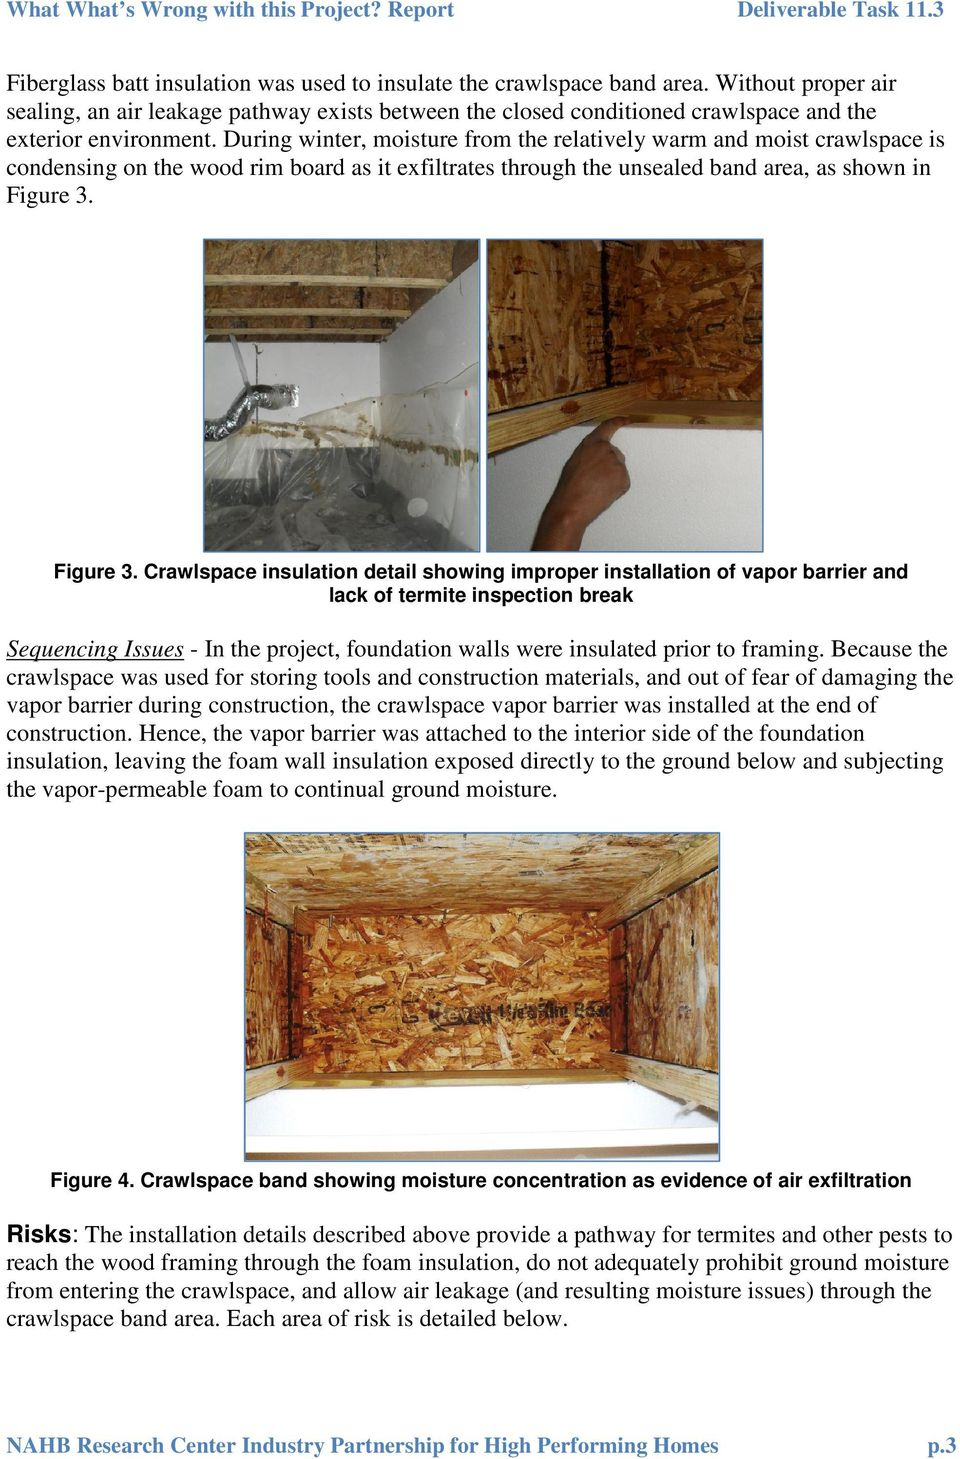 During winter, moisture from the relatively warm and moist crawlspace is condensing on the wood rim board as it exfiltrates through the unsealed band area, as shown in Figure 3.